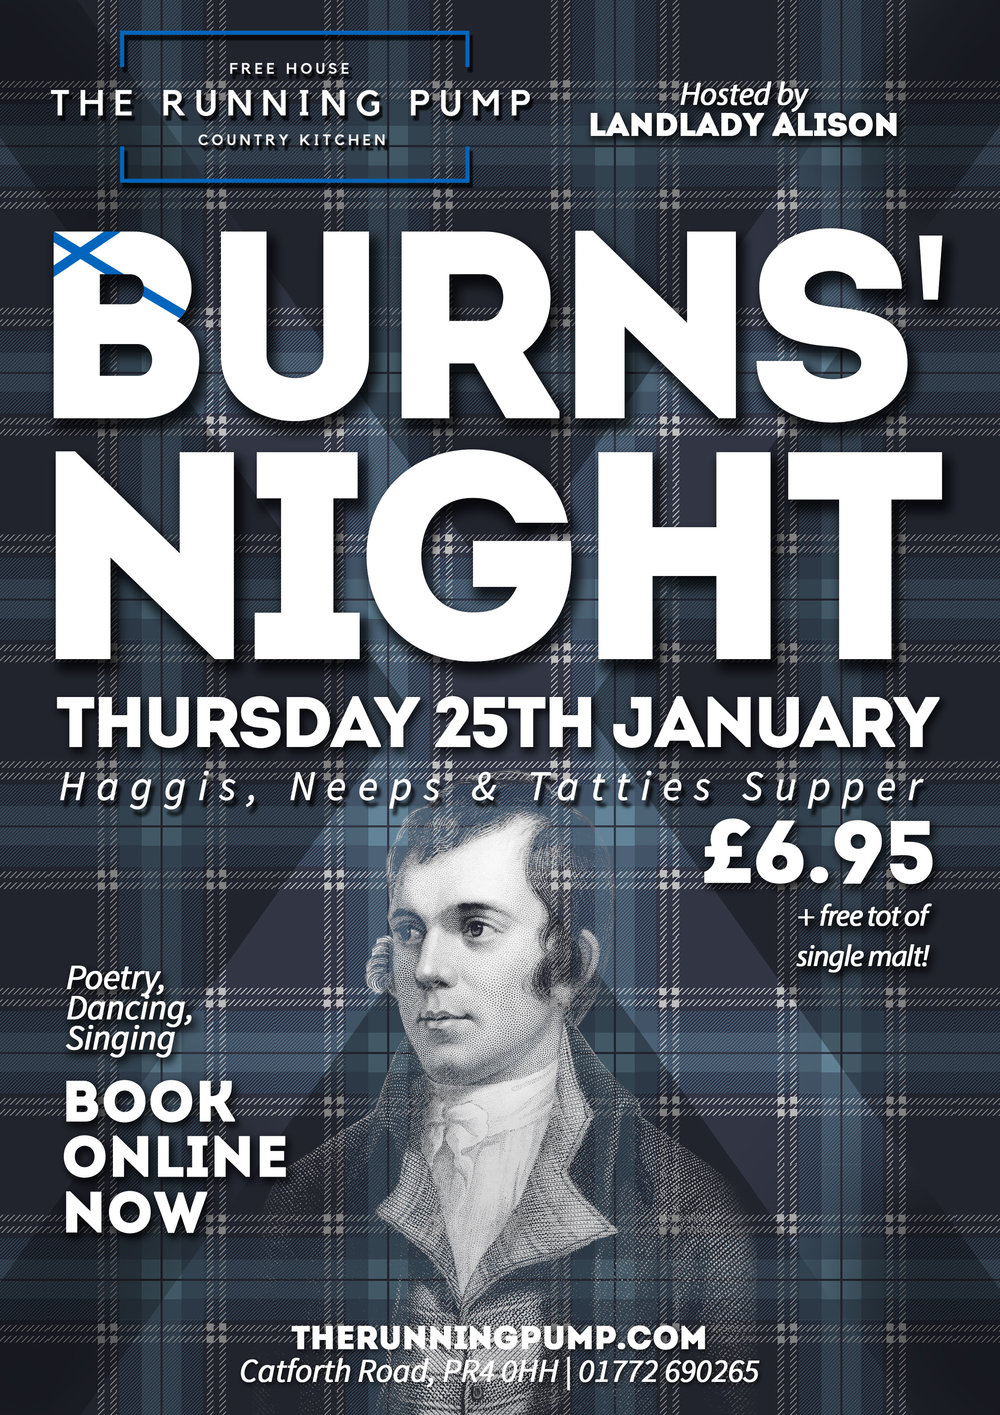 BURNS' NIGHT - To beat the January blues, the Running Pump is organizing a great night of fun and culture to celebrate the life of the great bard, Robert Burns.A Haggis, Neeps & Tatties Supper will be available for only £6.95 with a free tot of single malt for those who want it, to raise a toast to the hearty, steaming haggis.Landlady Alison will be reciting Burn's famous Address to the Haggis and all are invited to share their talents, reciting a poem, singing a song or performing any other entertaining party piece. There will be a fine playlist of Scottish music and Alison will act as caller to give you all a chance to learn and join in a few Scottish Country Dances.So, get your tartan glad rags on and join us for a night of fun and frolics.